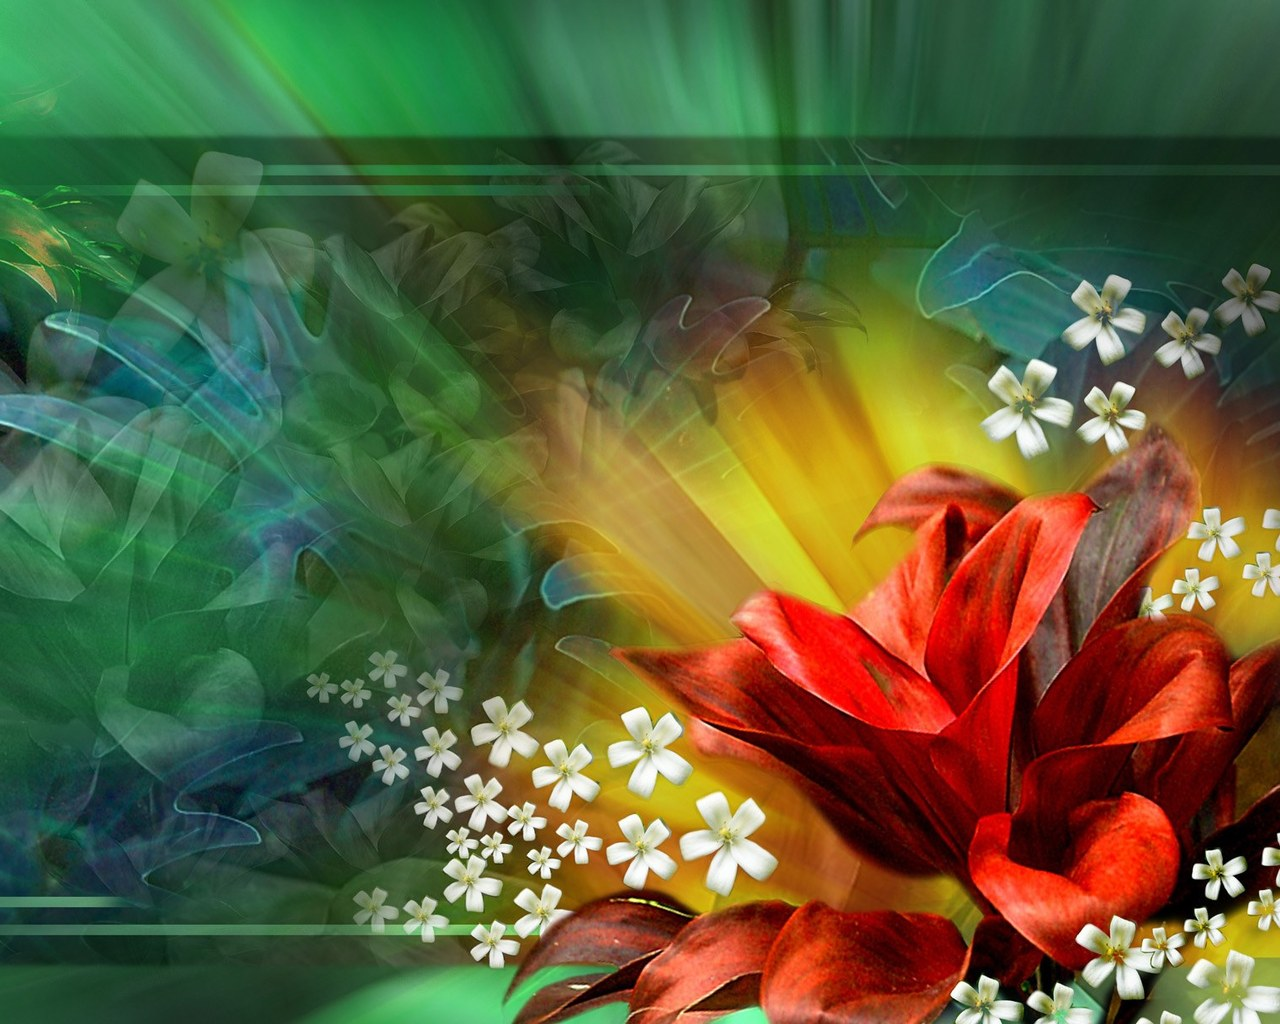 Download Animated Desktop Wallpaper Animated Backgrounds 1280x1024